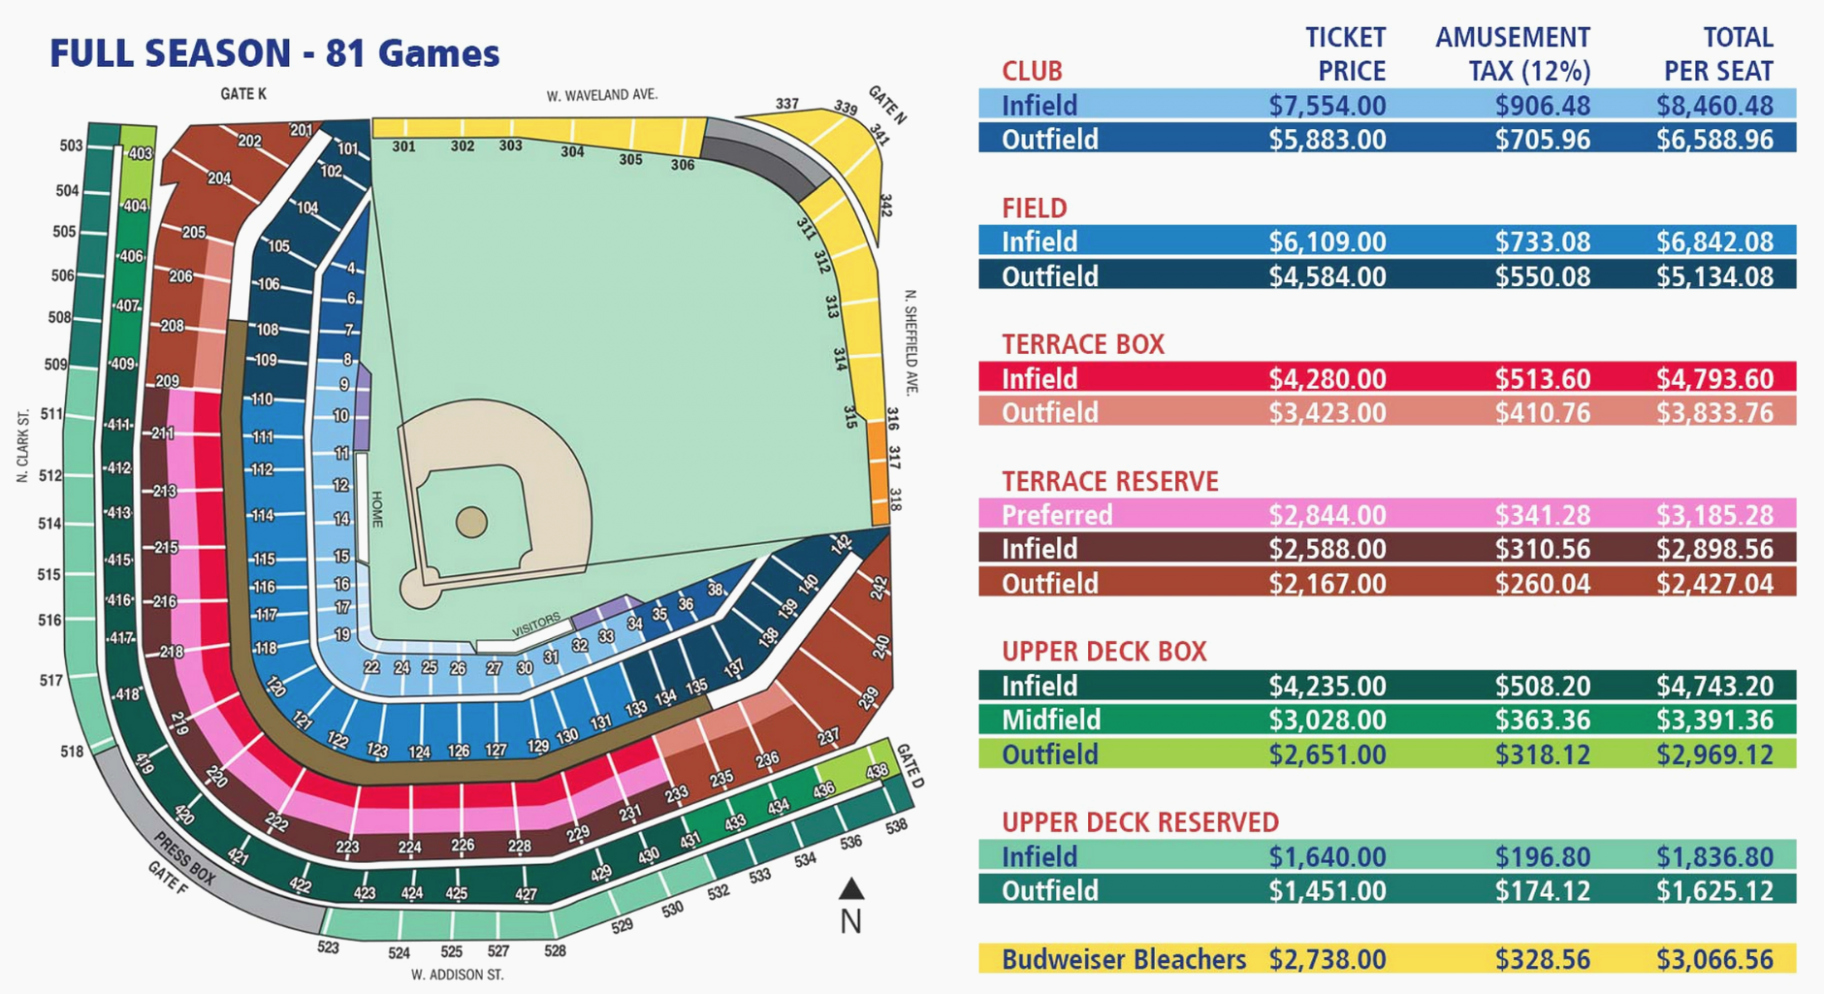 Wrigley Seating Chart Seat Numbers New How to Have A Fantastic Wrigley Field Seat